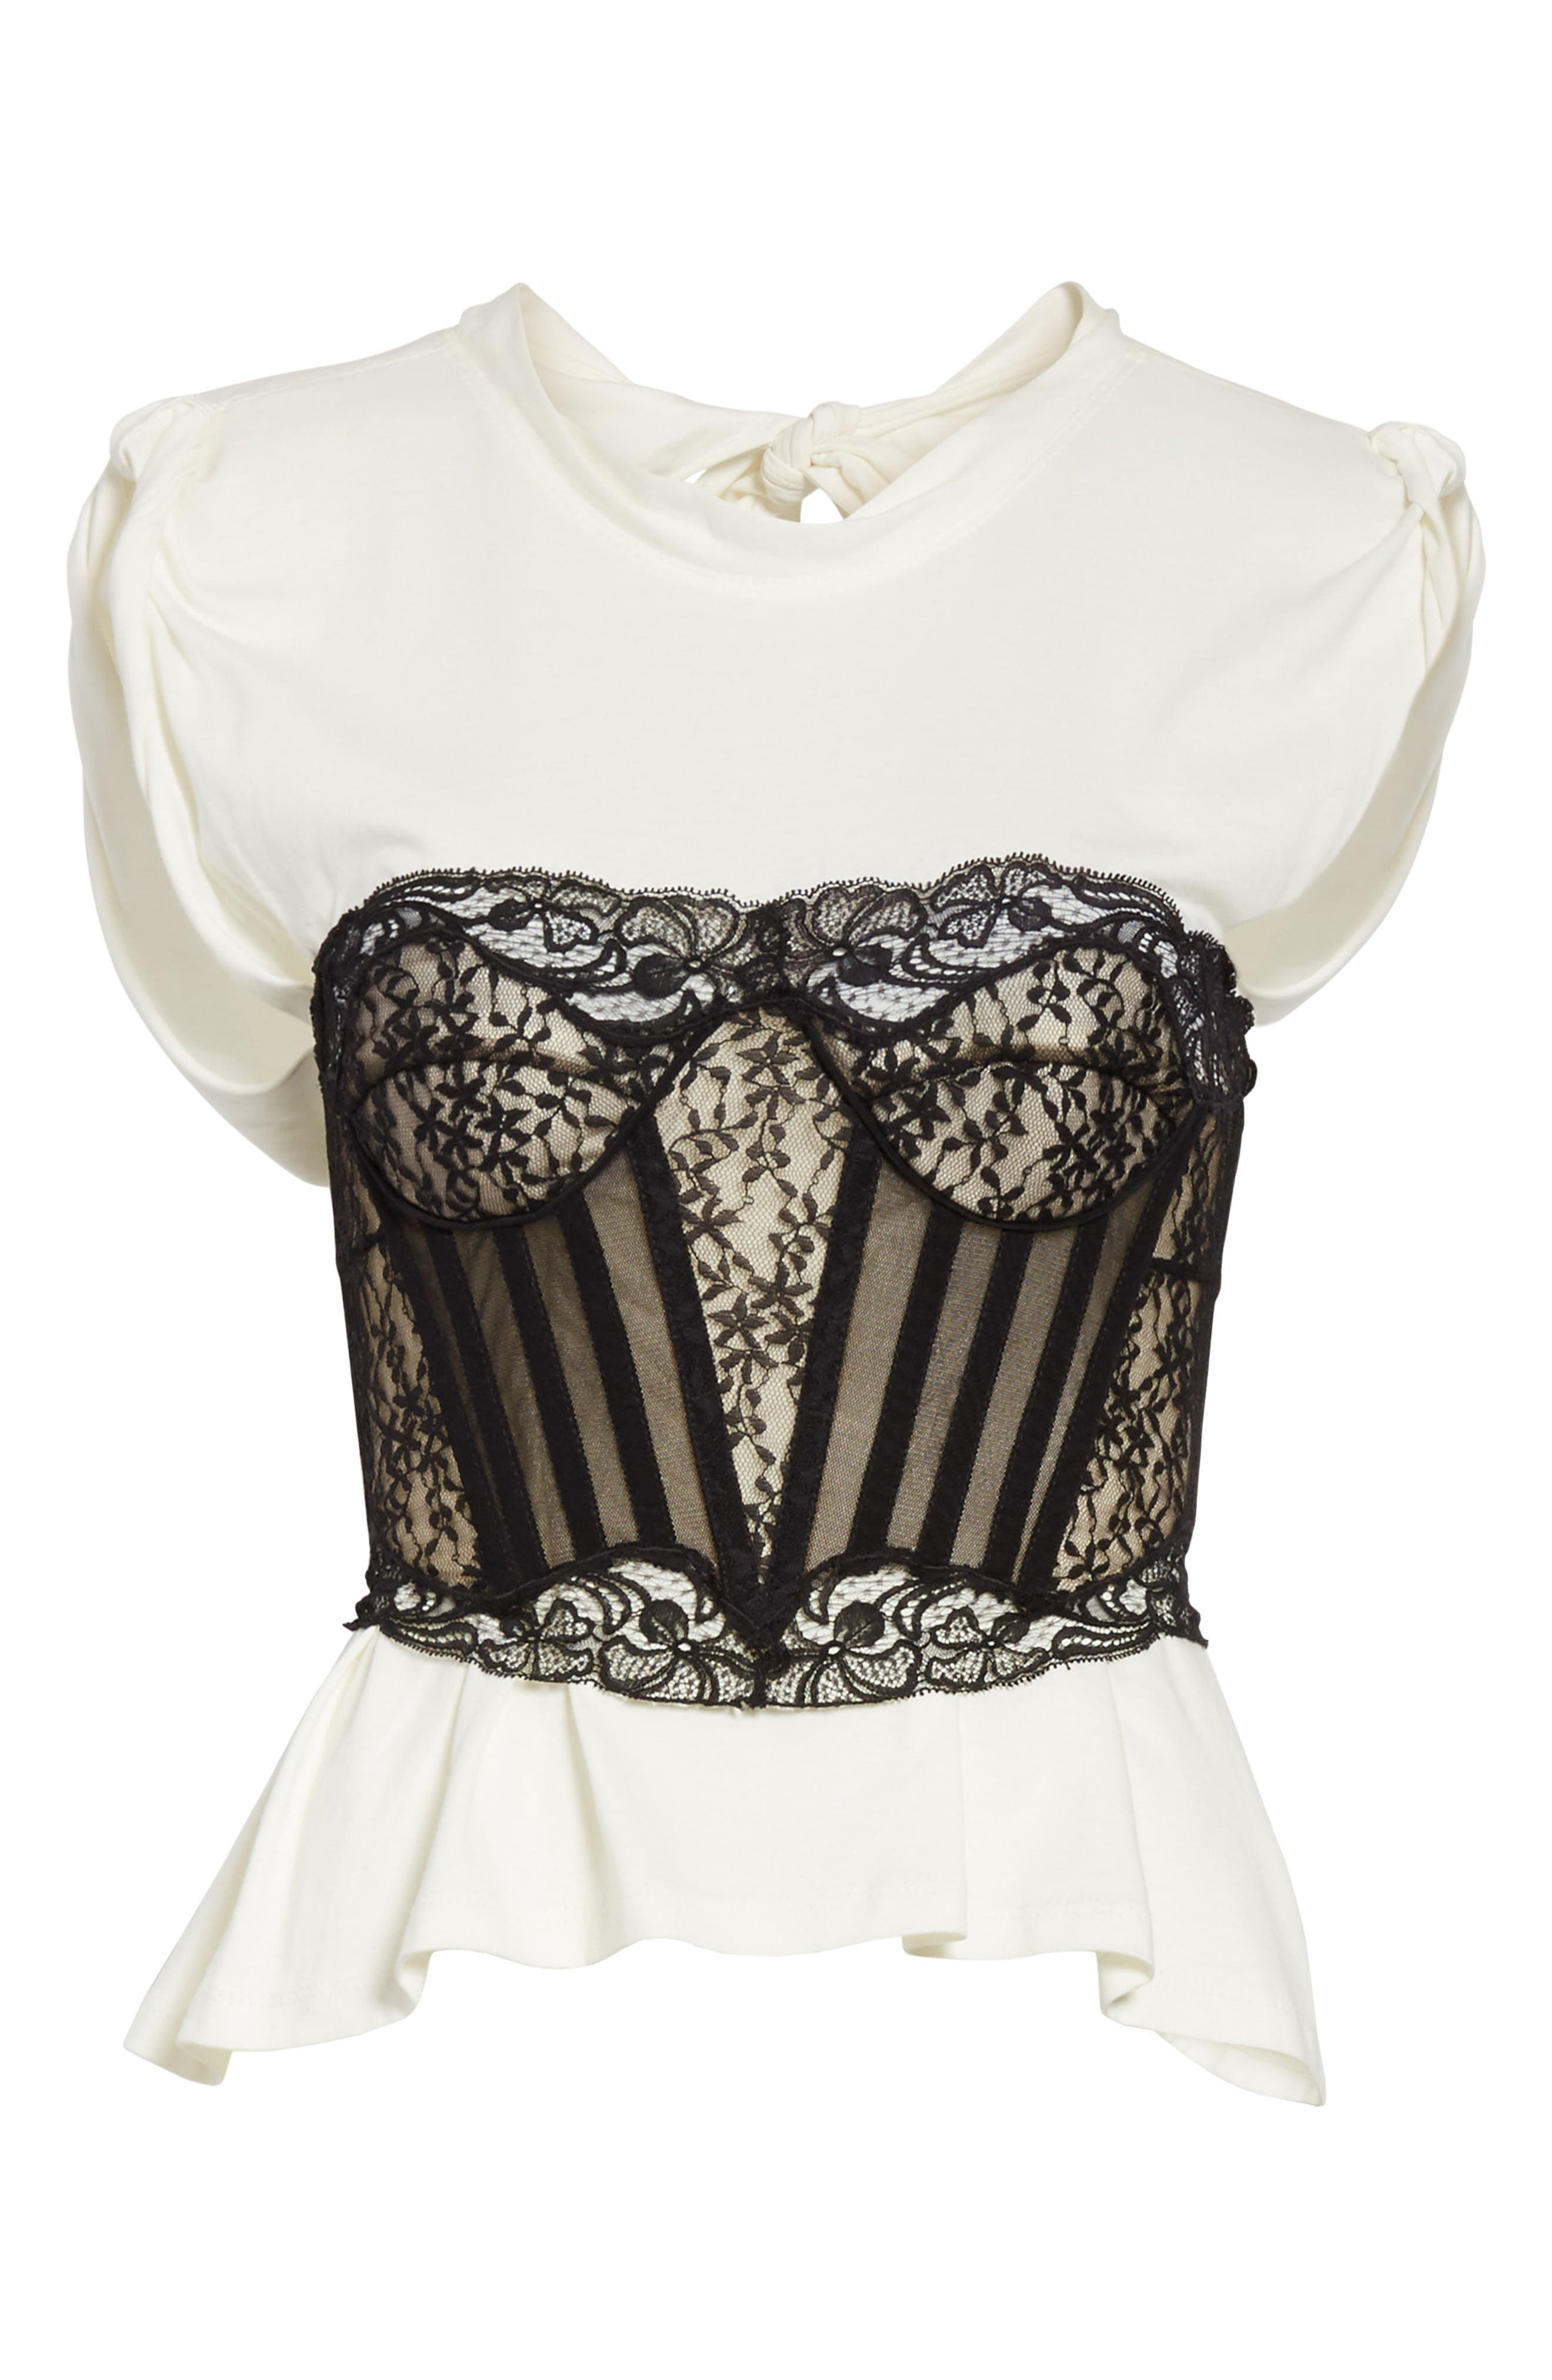 Cotton Top with Lace Bustier,                             Alternate thumbnail 6, color,                             900